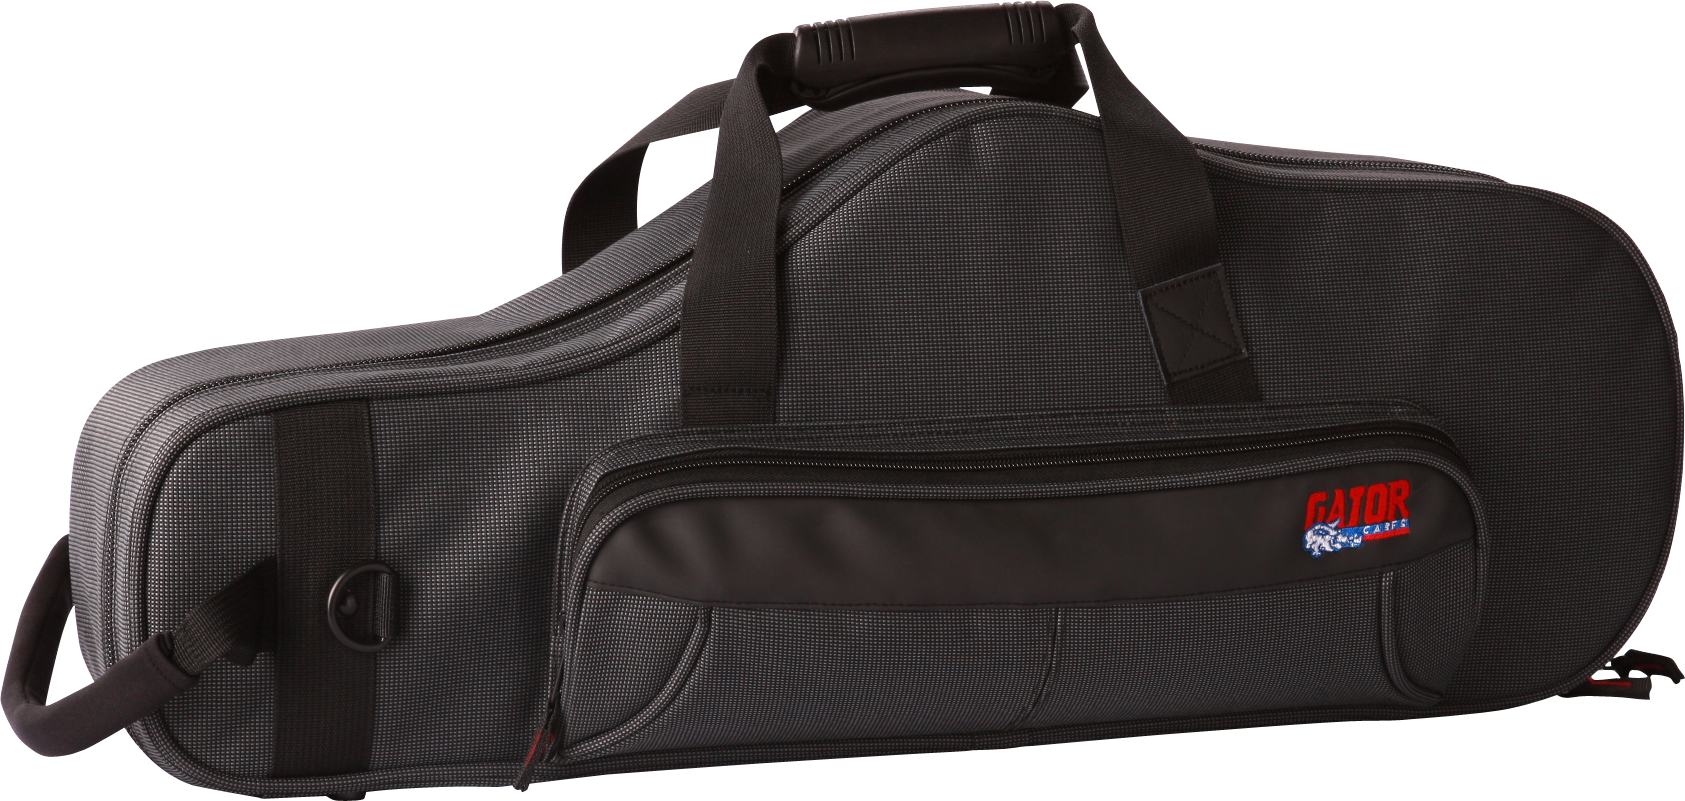 Gator GLALTOSAXMPC Lightweight Alto Saxophone Case in Black by Gator